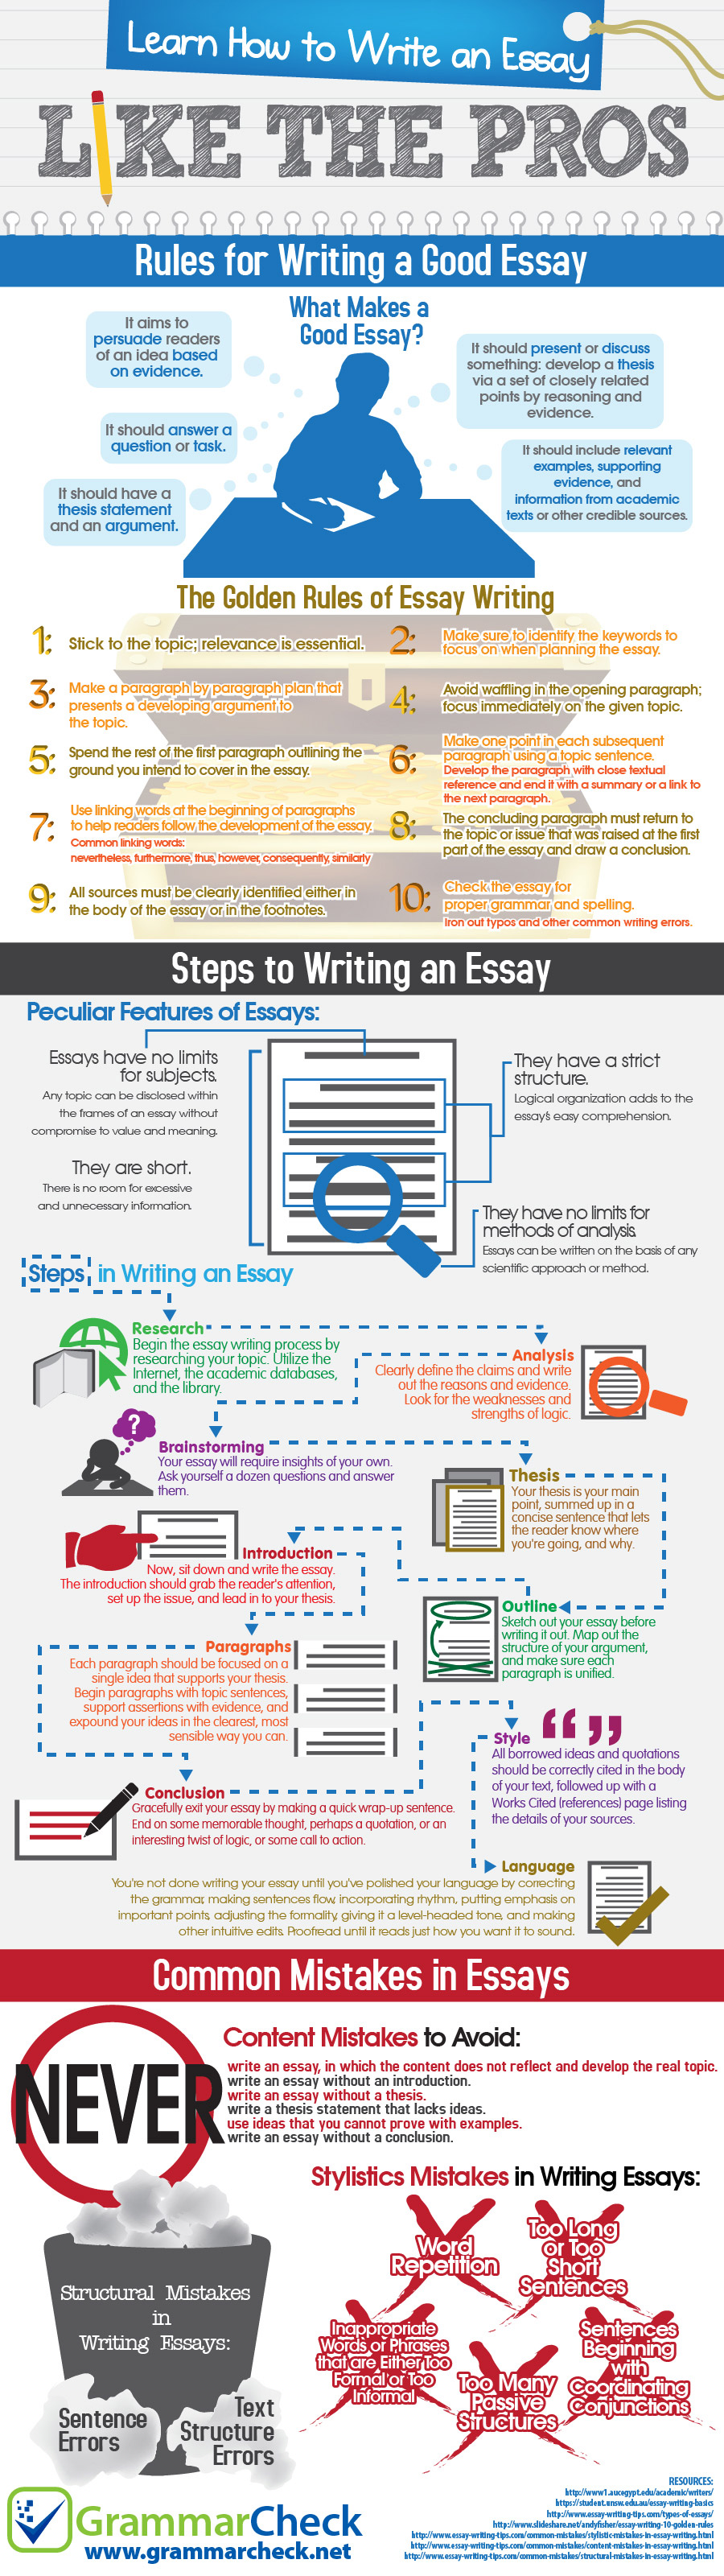 learn how to write an essay essay writing service learn how to write an essay